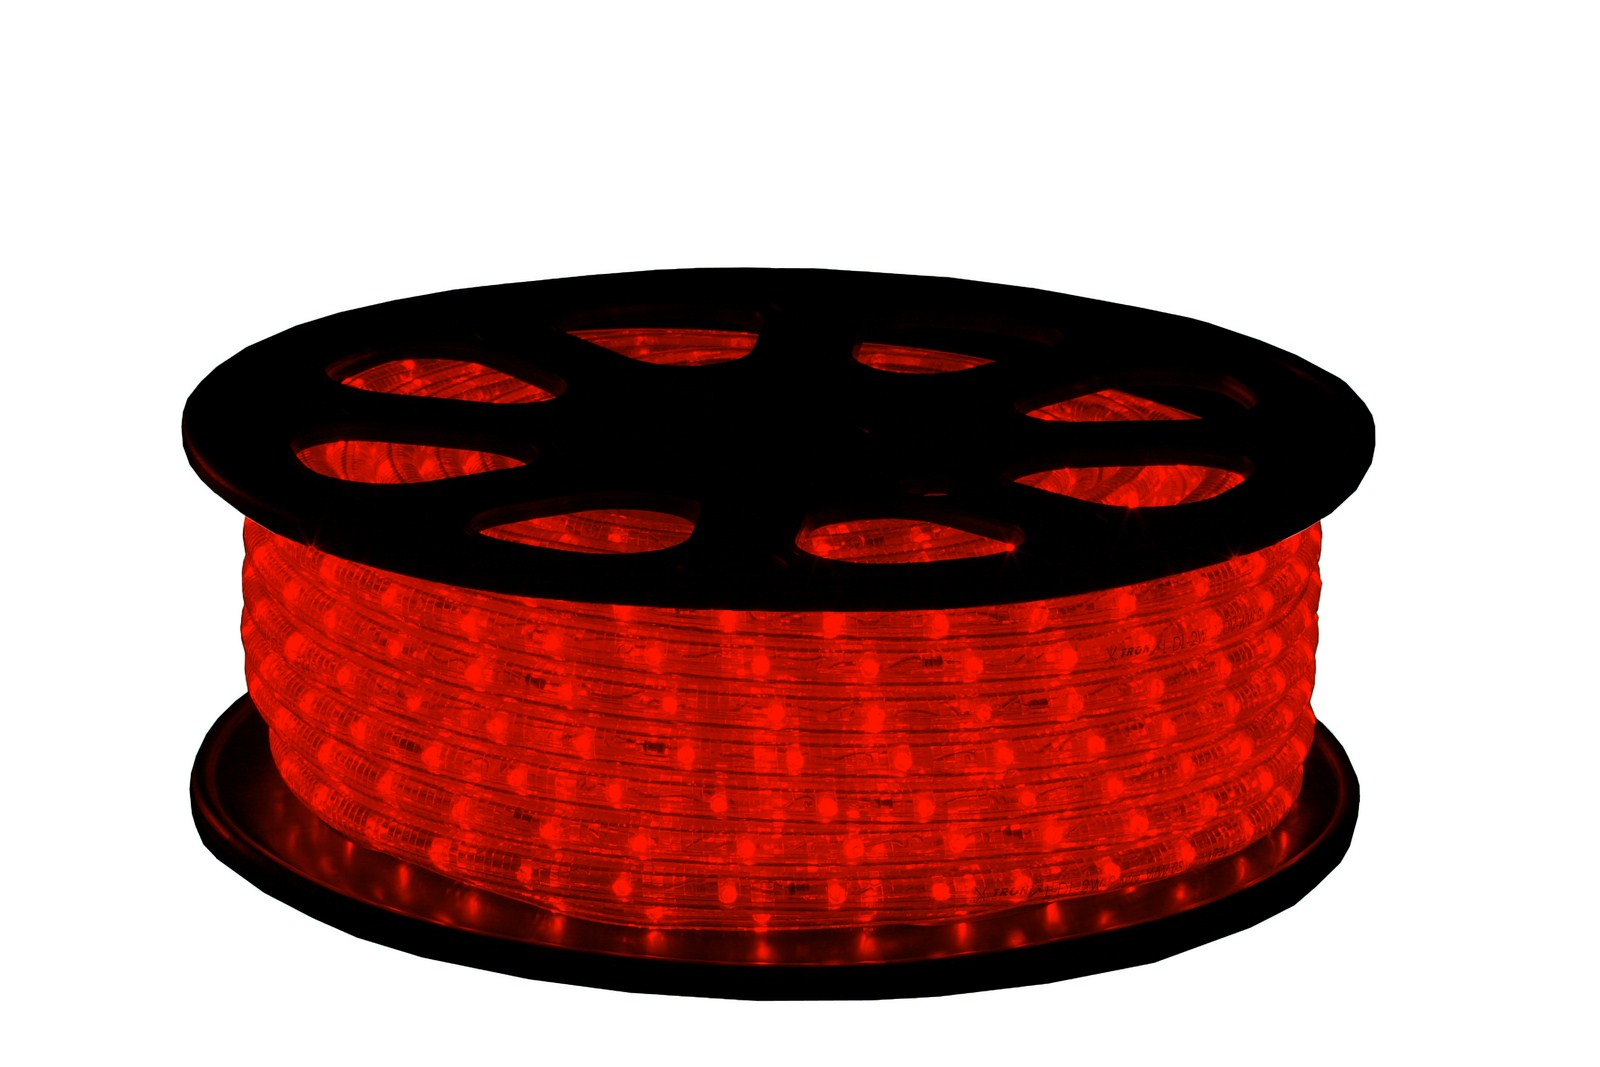 Tronix LED Glamour Light lichtslang rood 36 LED's 24V 30M